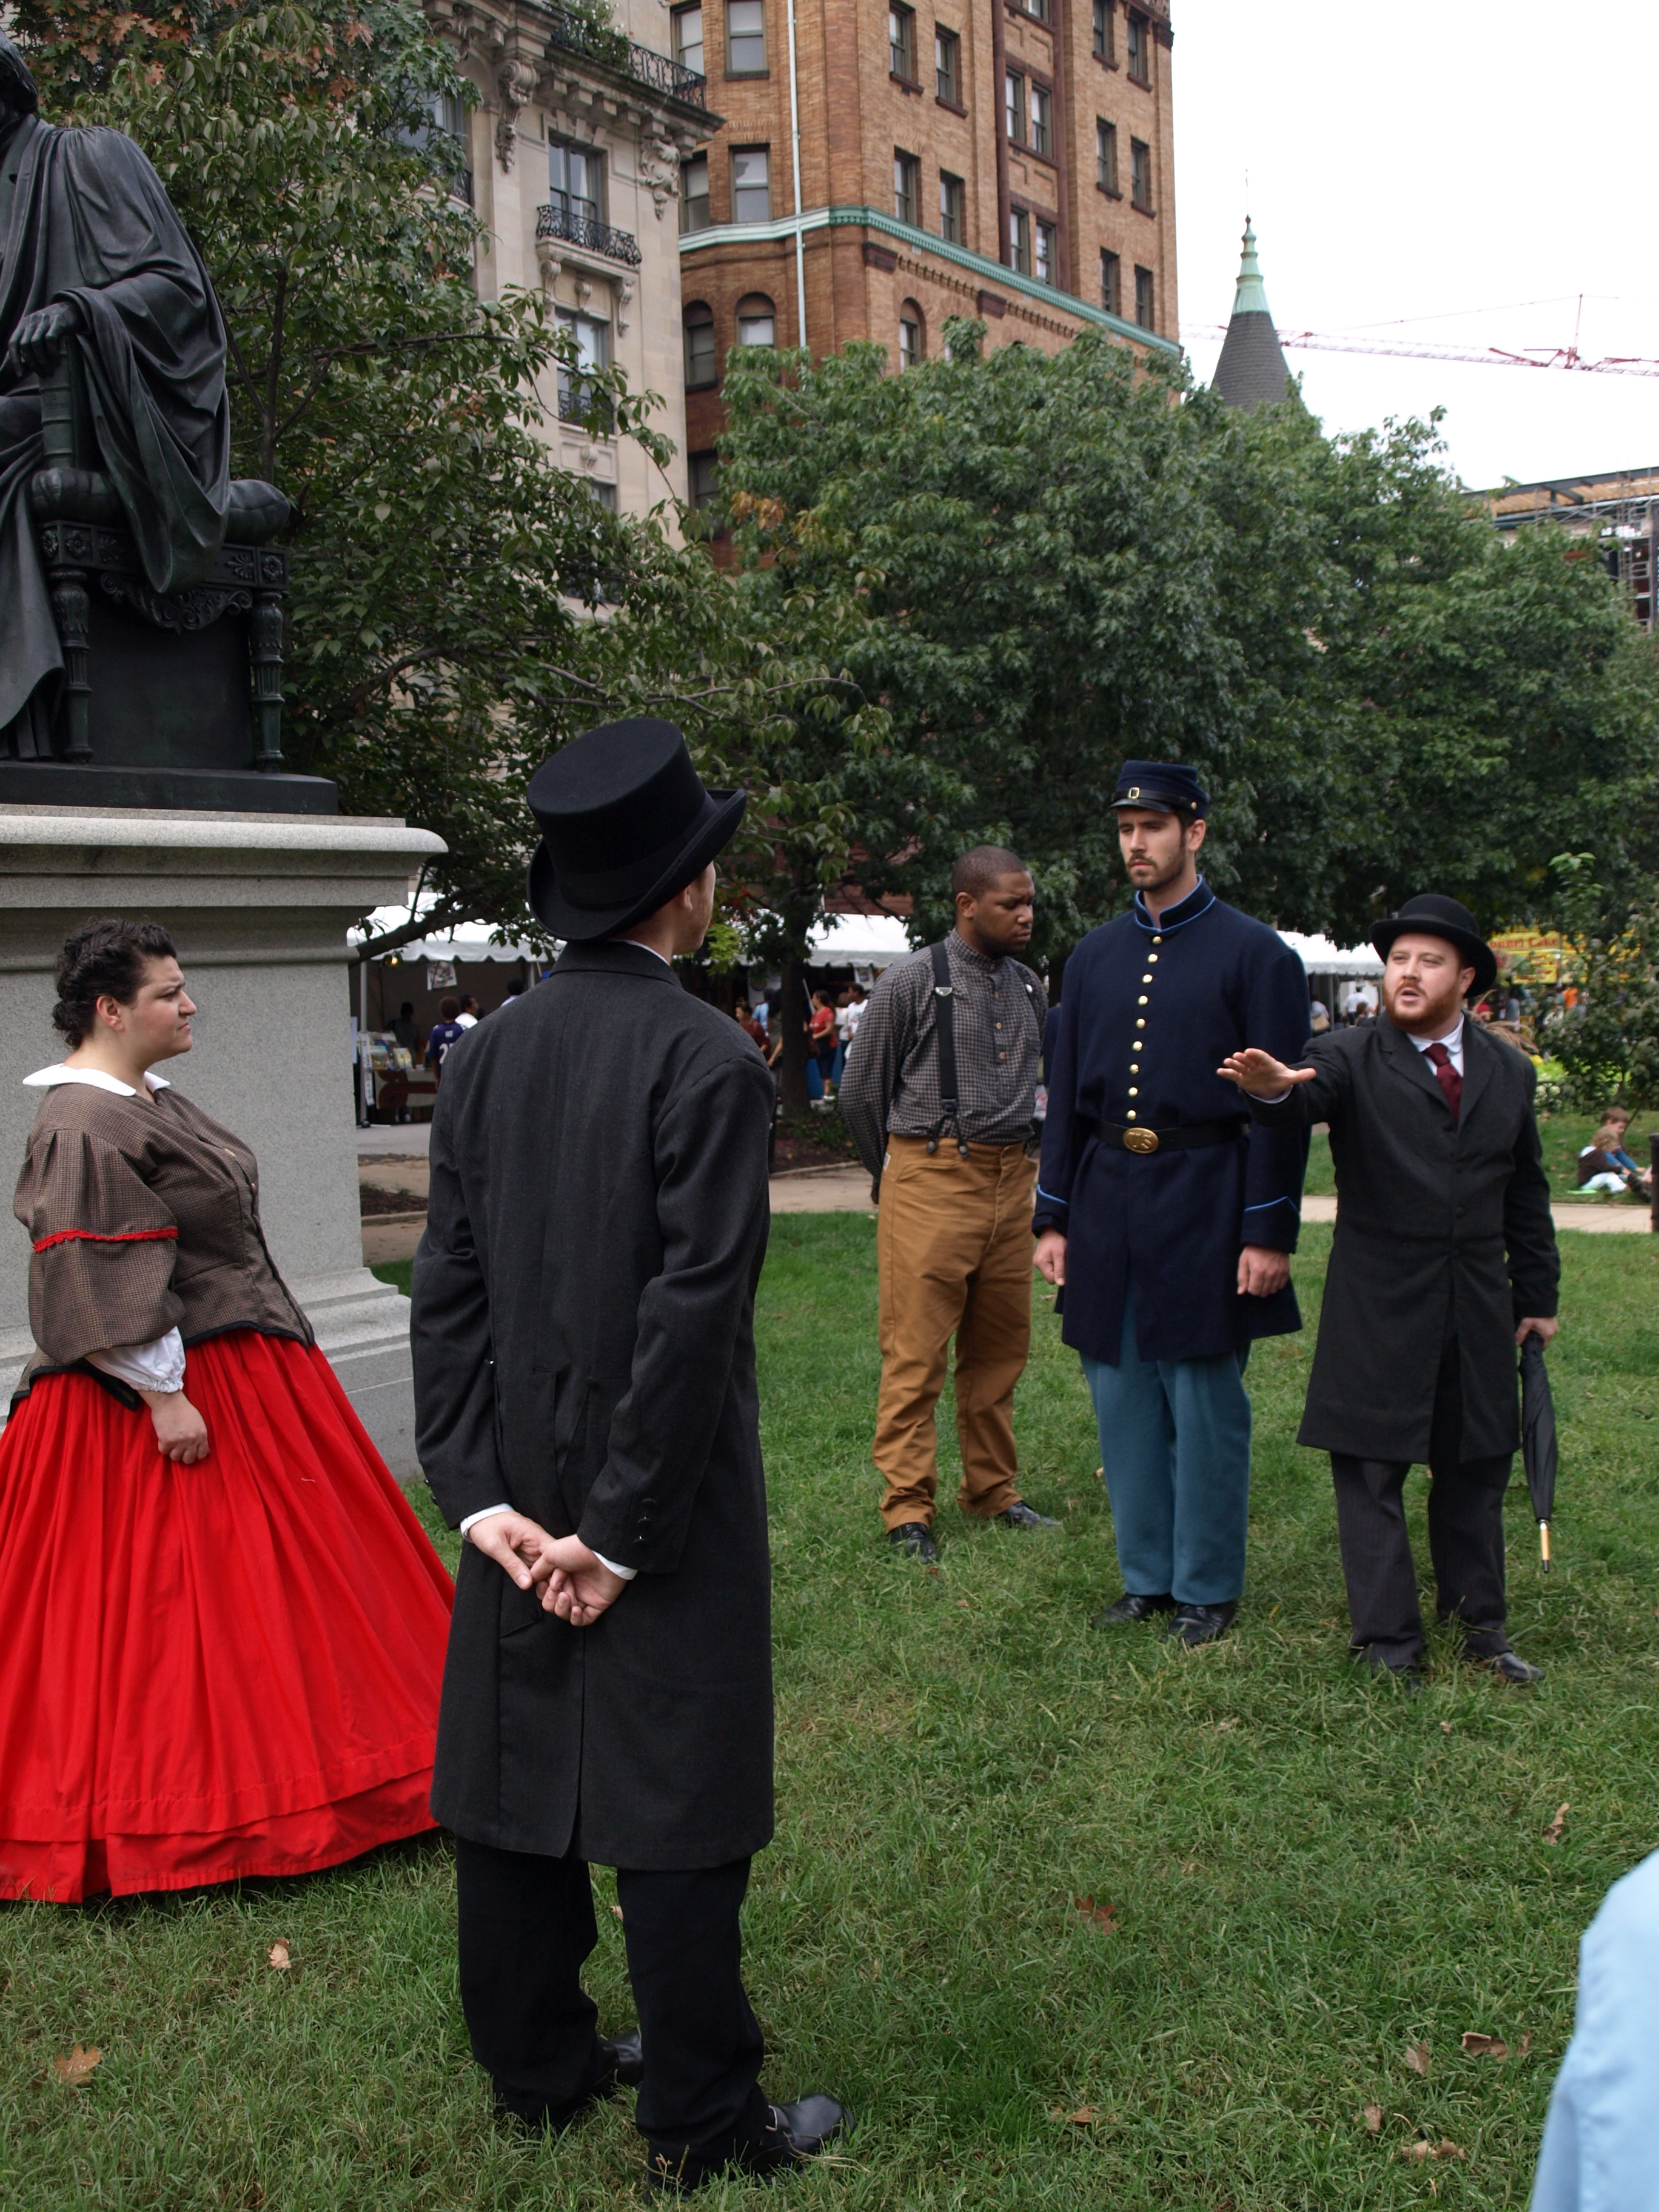 Interpretive Reenactment of the Pratt Street Riot of 1861